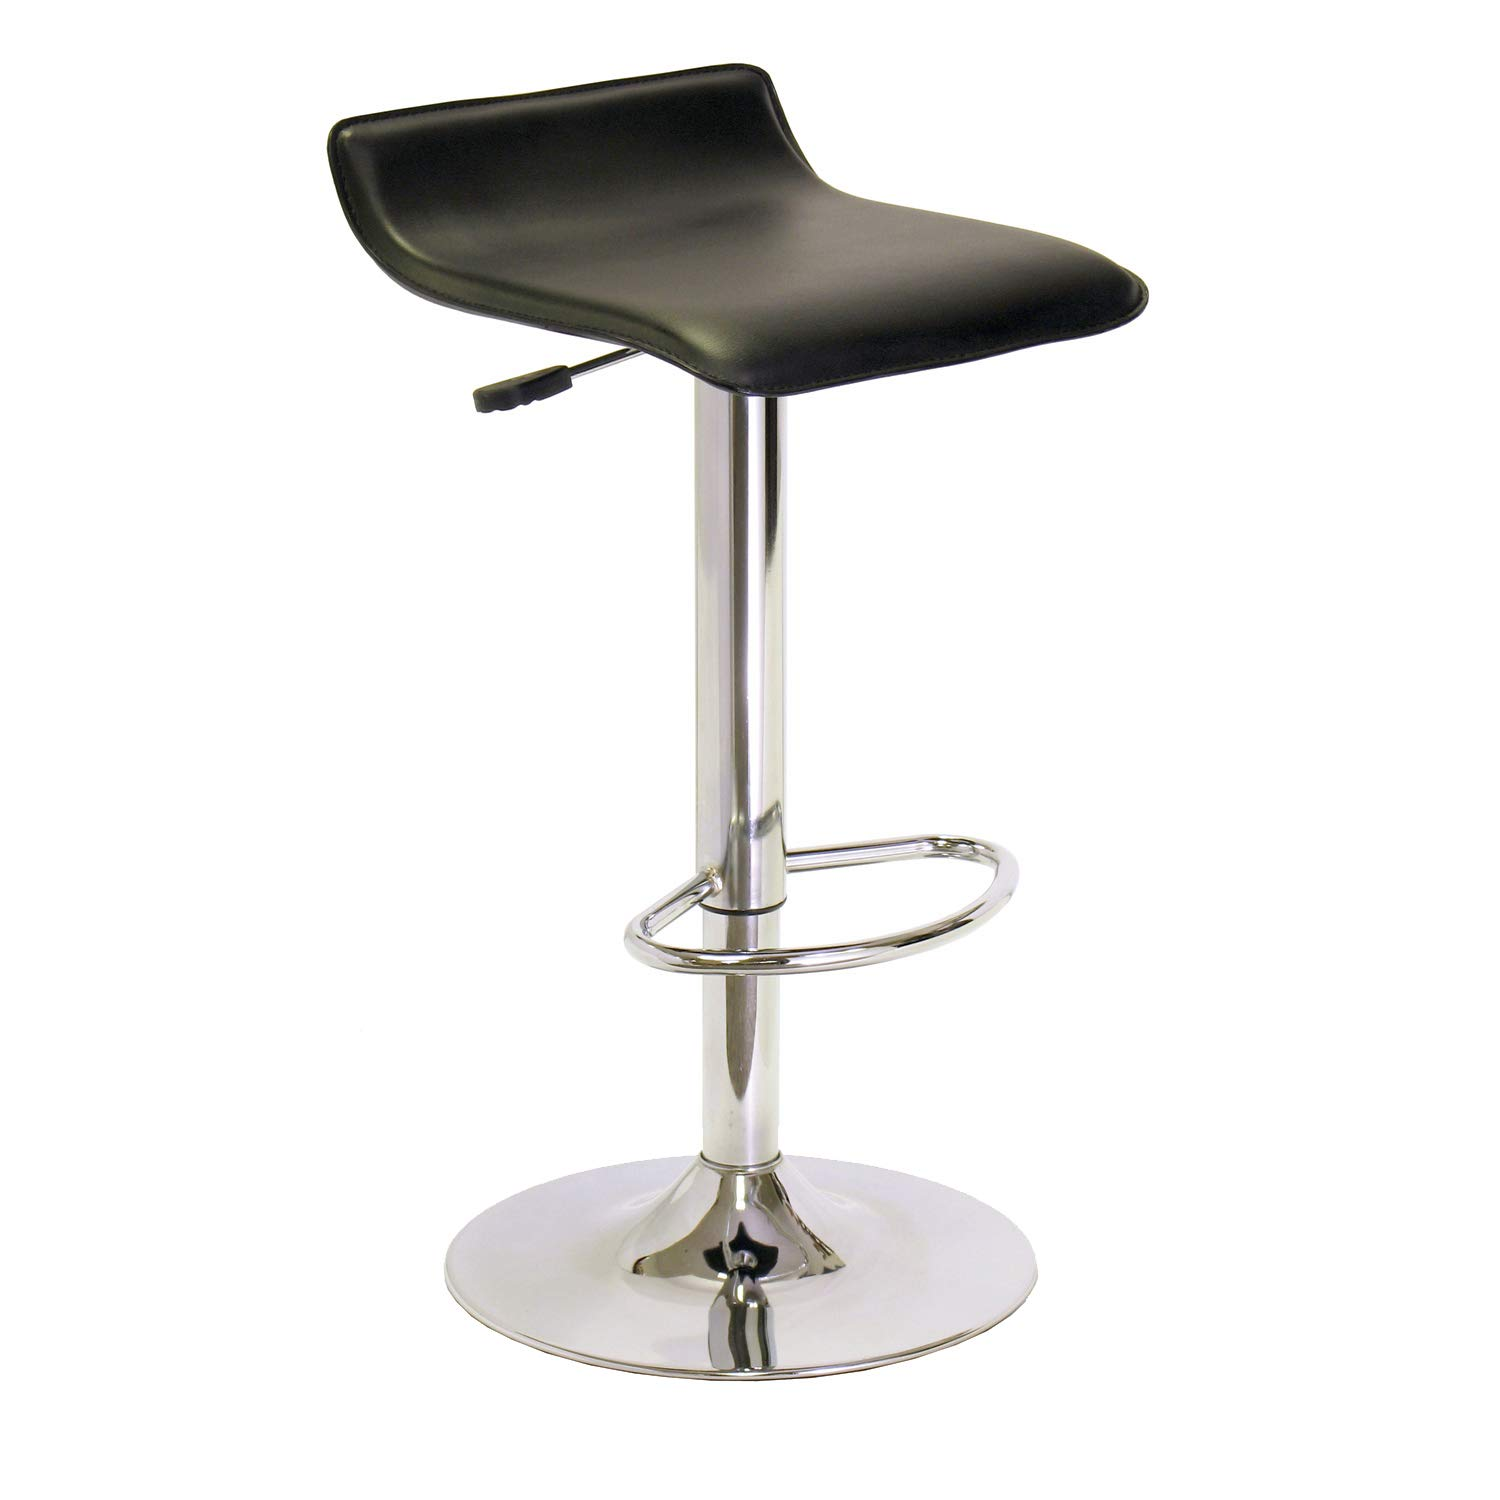 Winsome 93129 Spectrum Stool, Black by Winsome